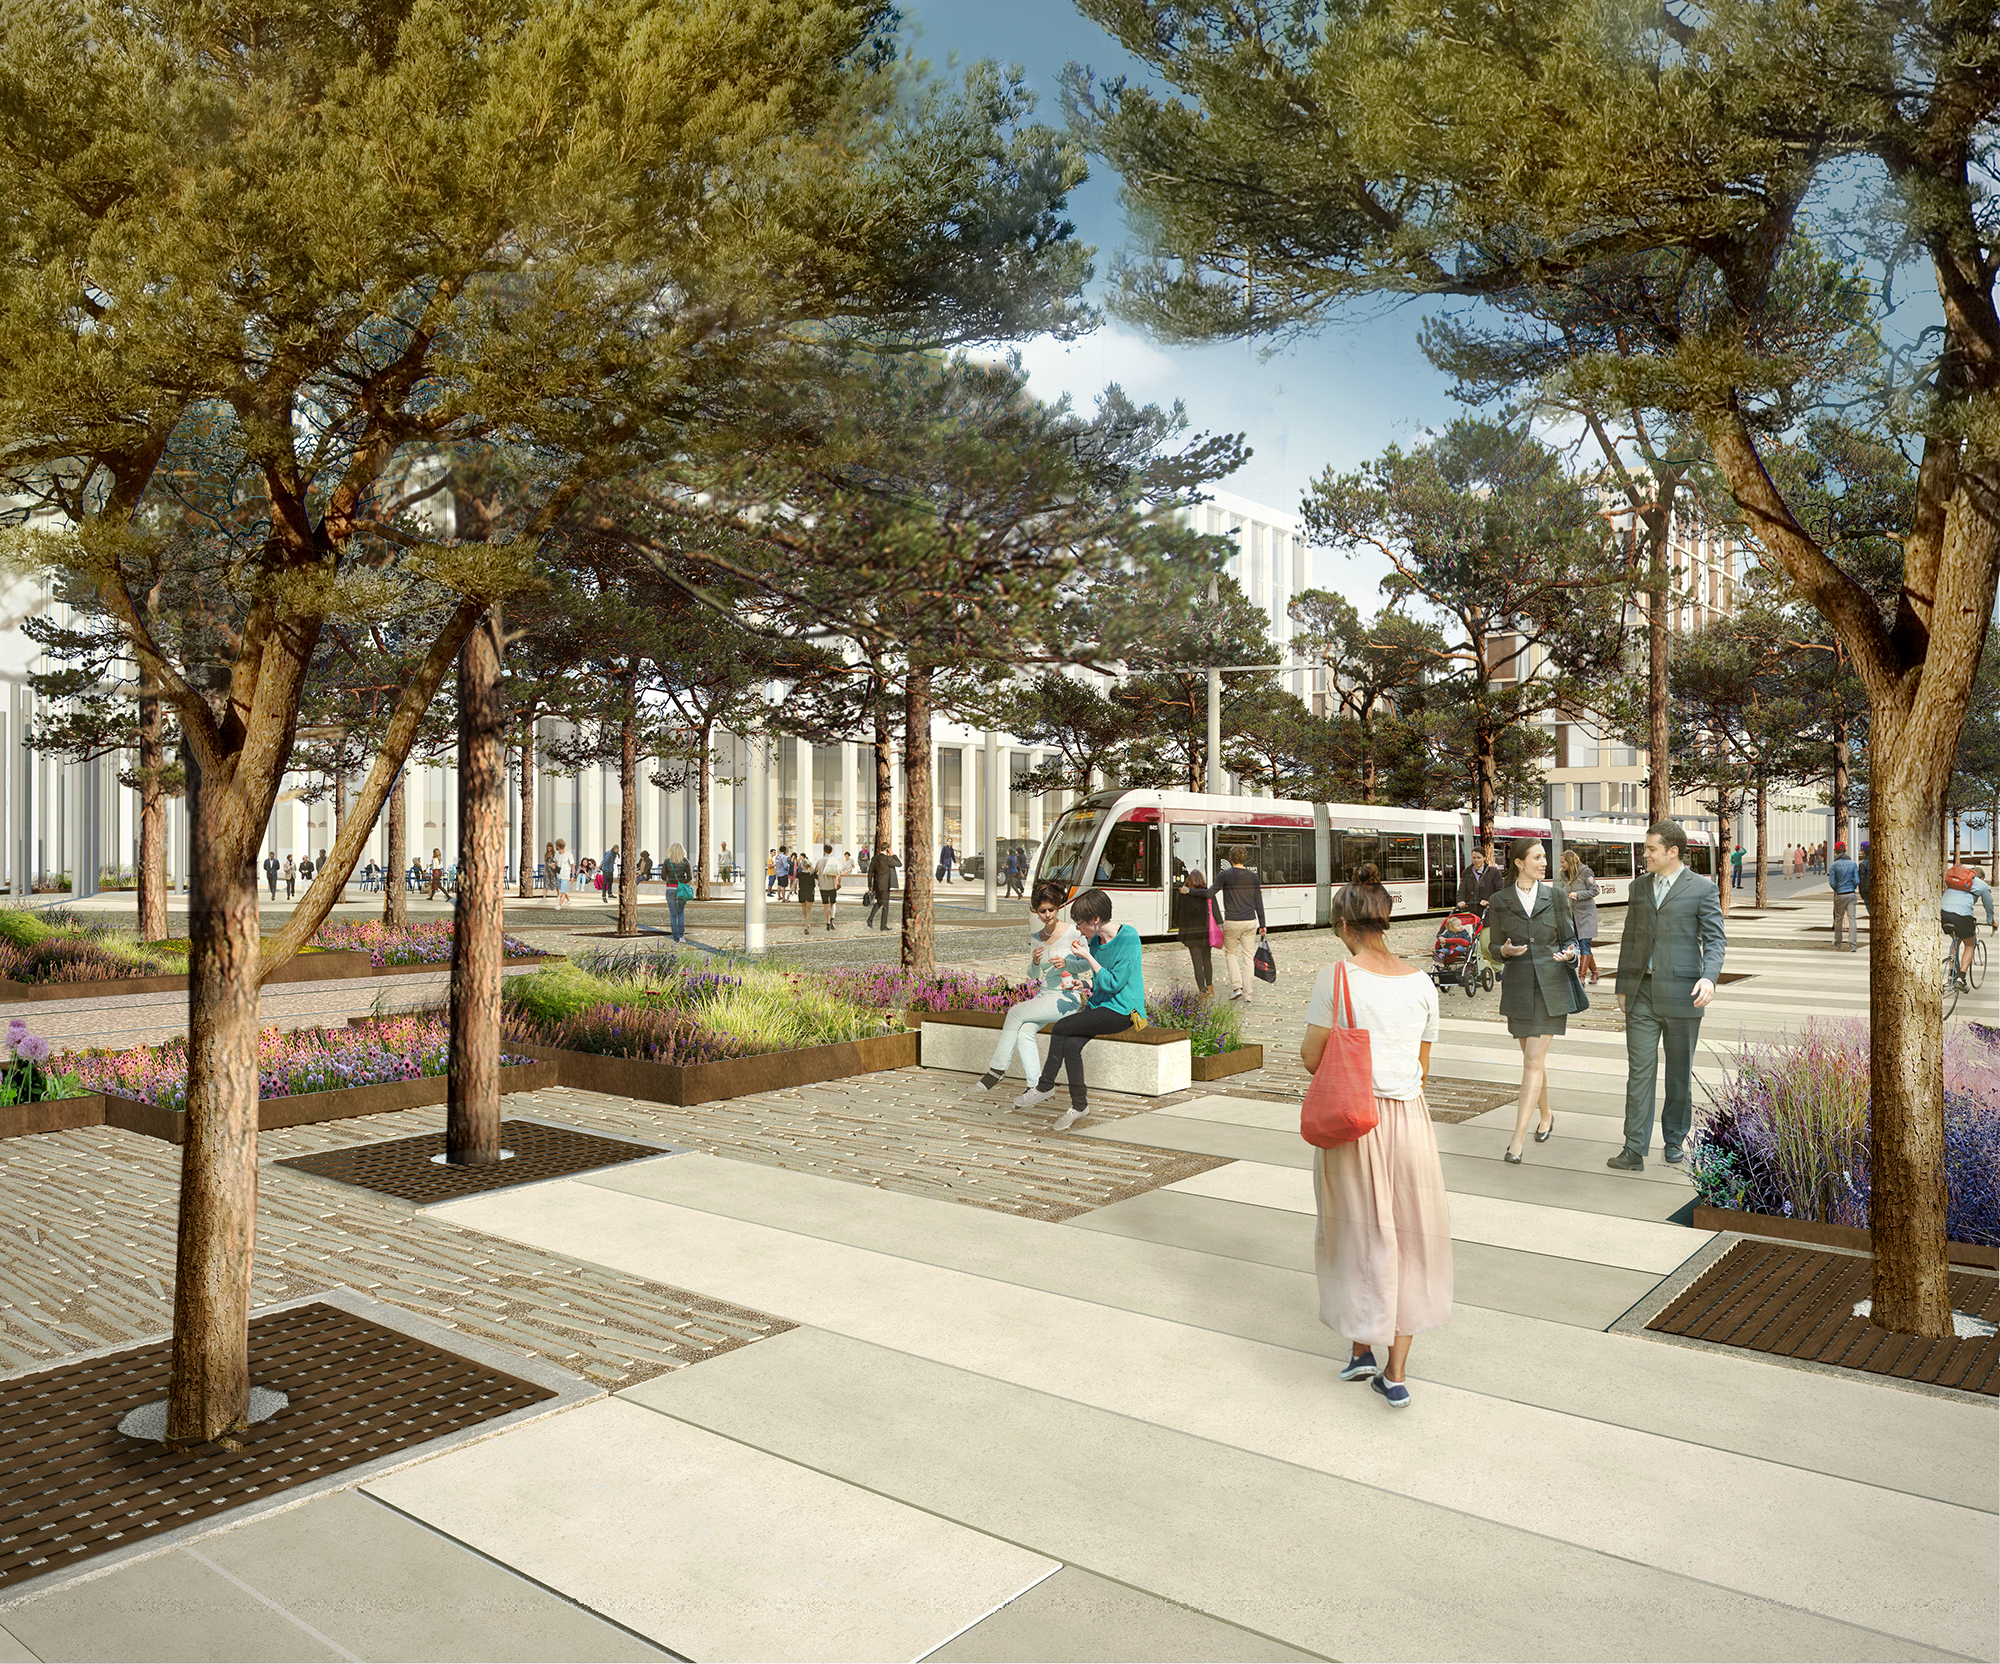 £700m plan for new Edinburgh district unveiled